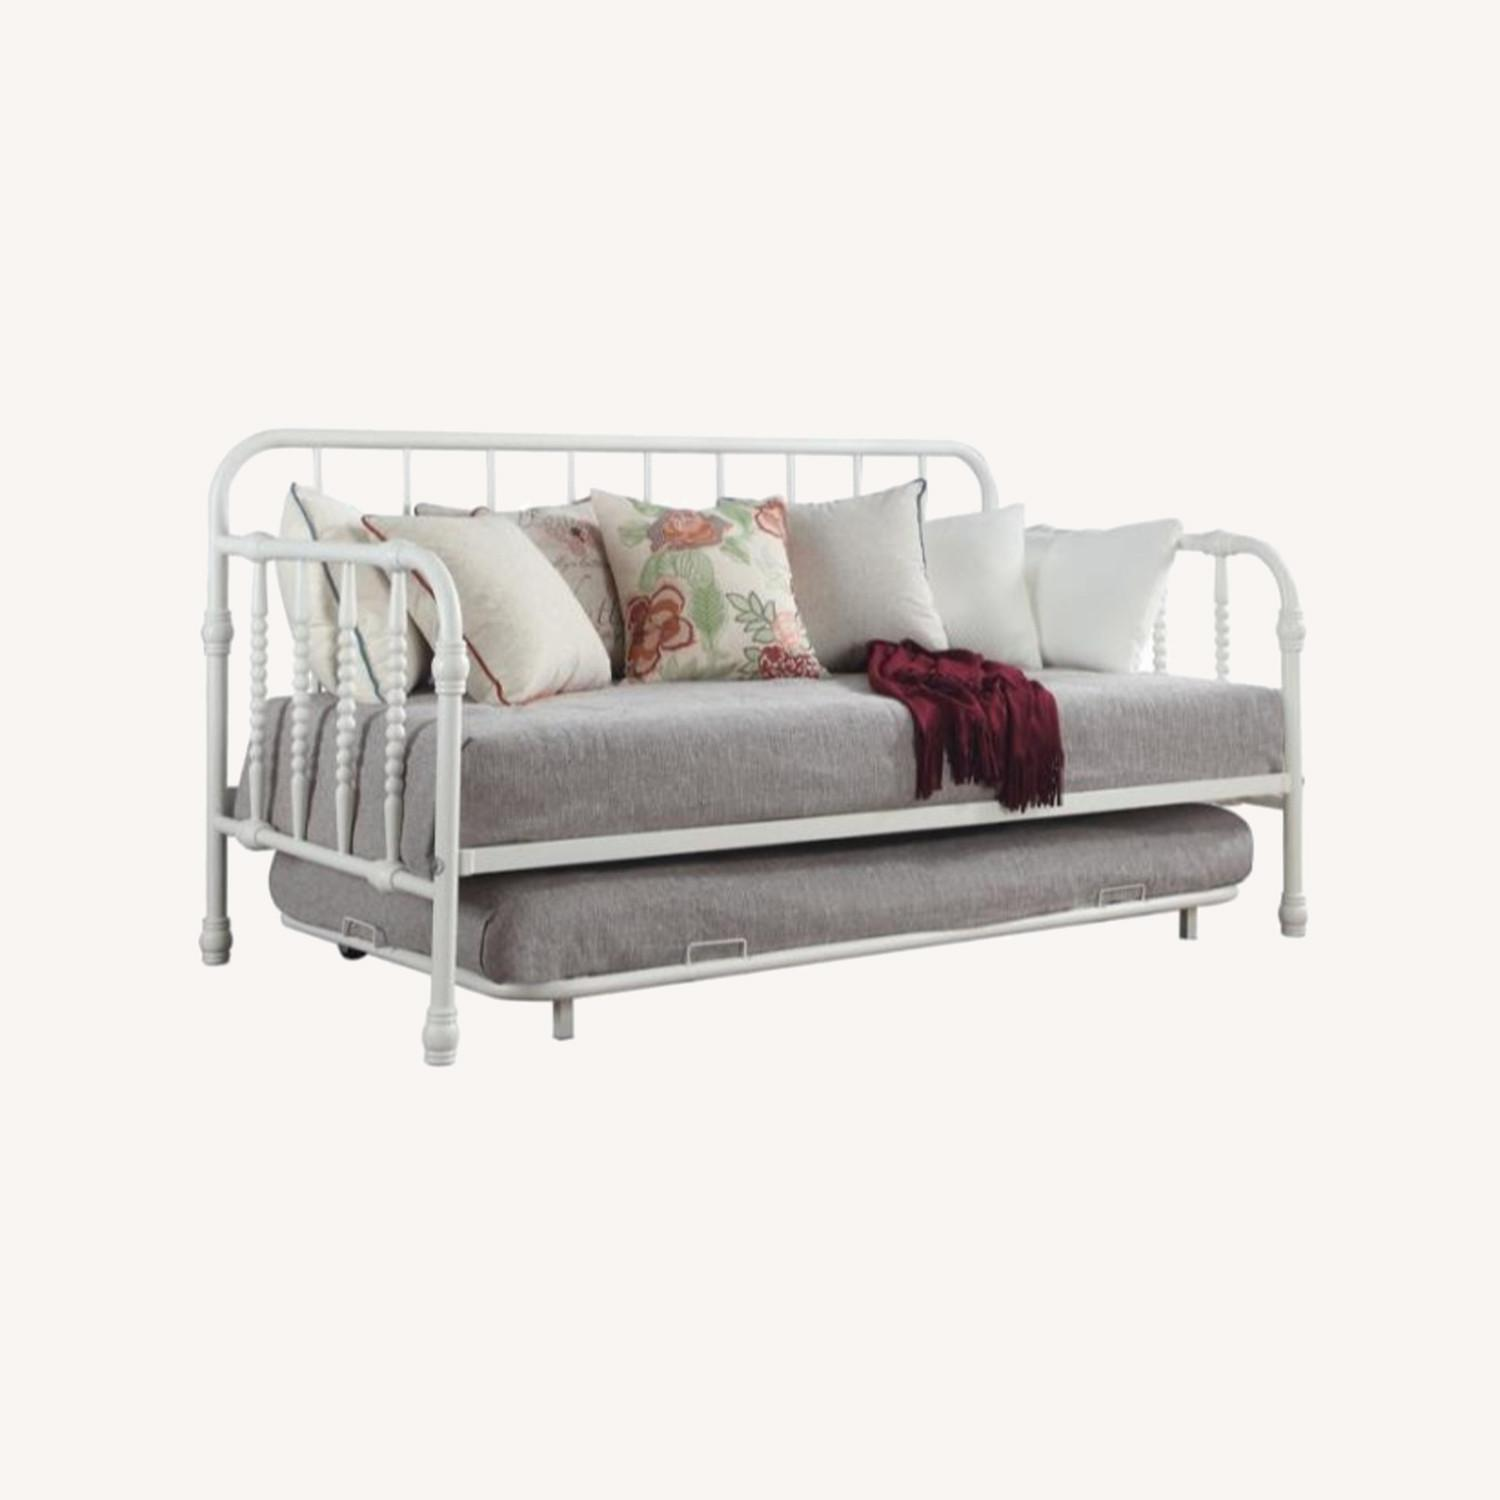 Twin Daybed W/ Trundle In White Steel Tubing - image-4